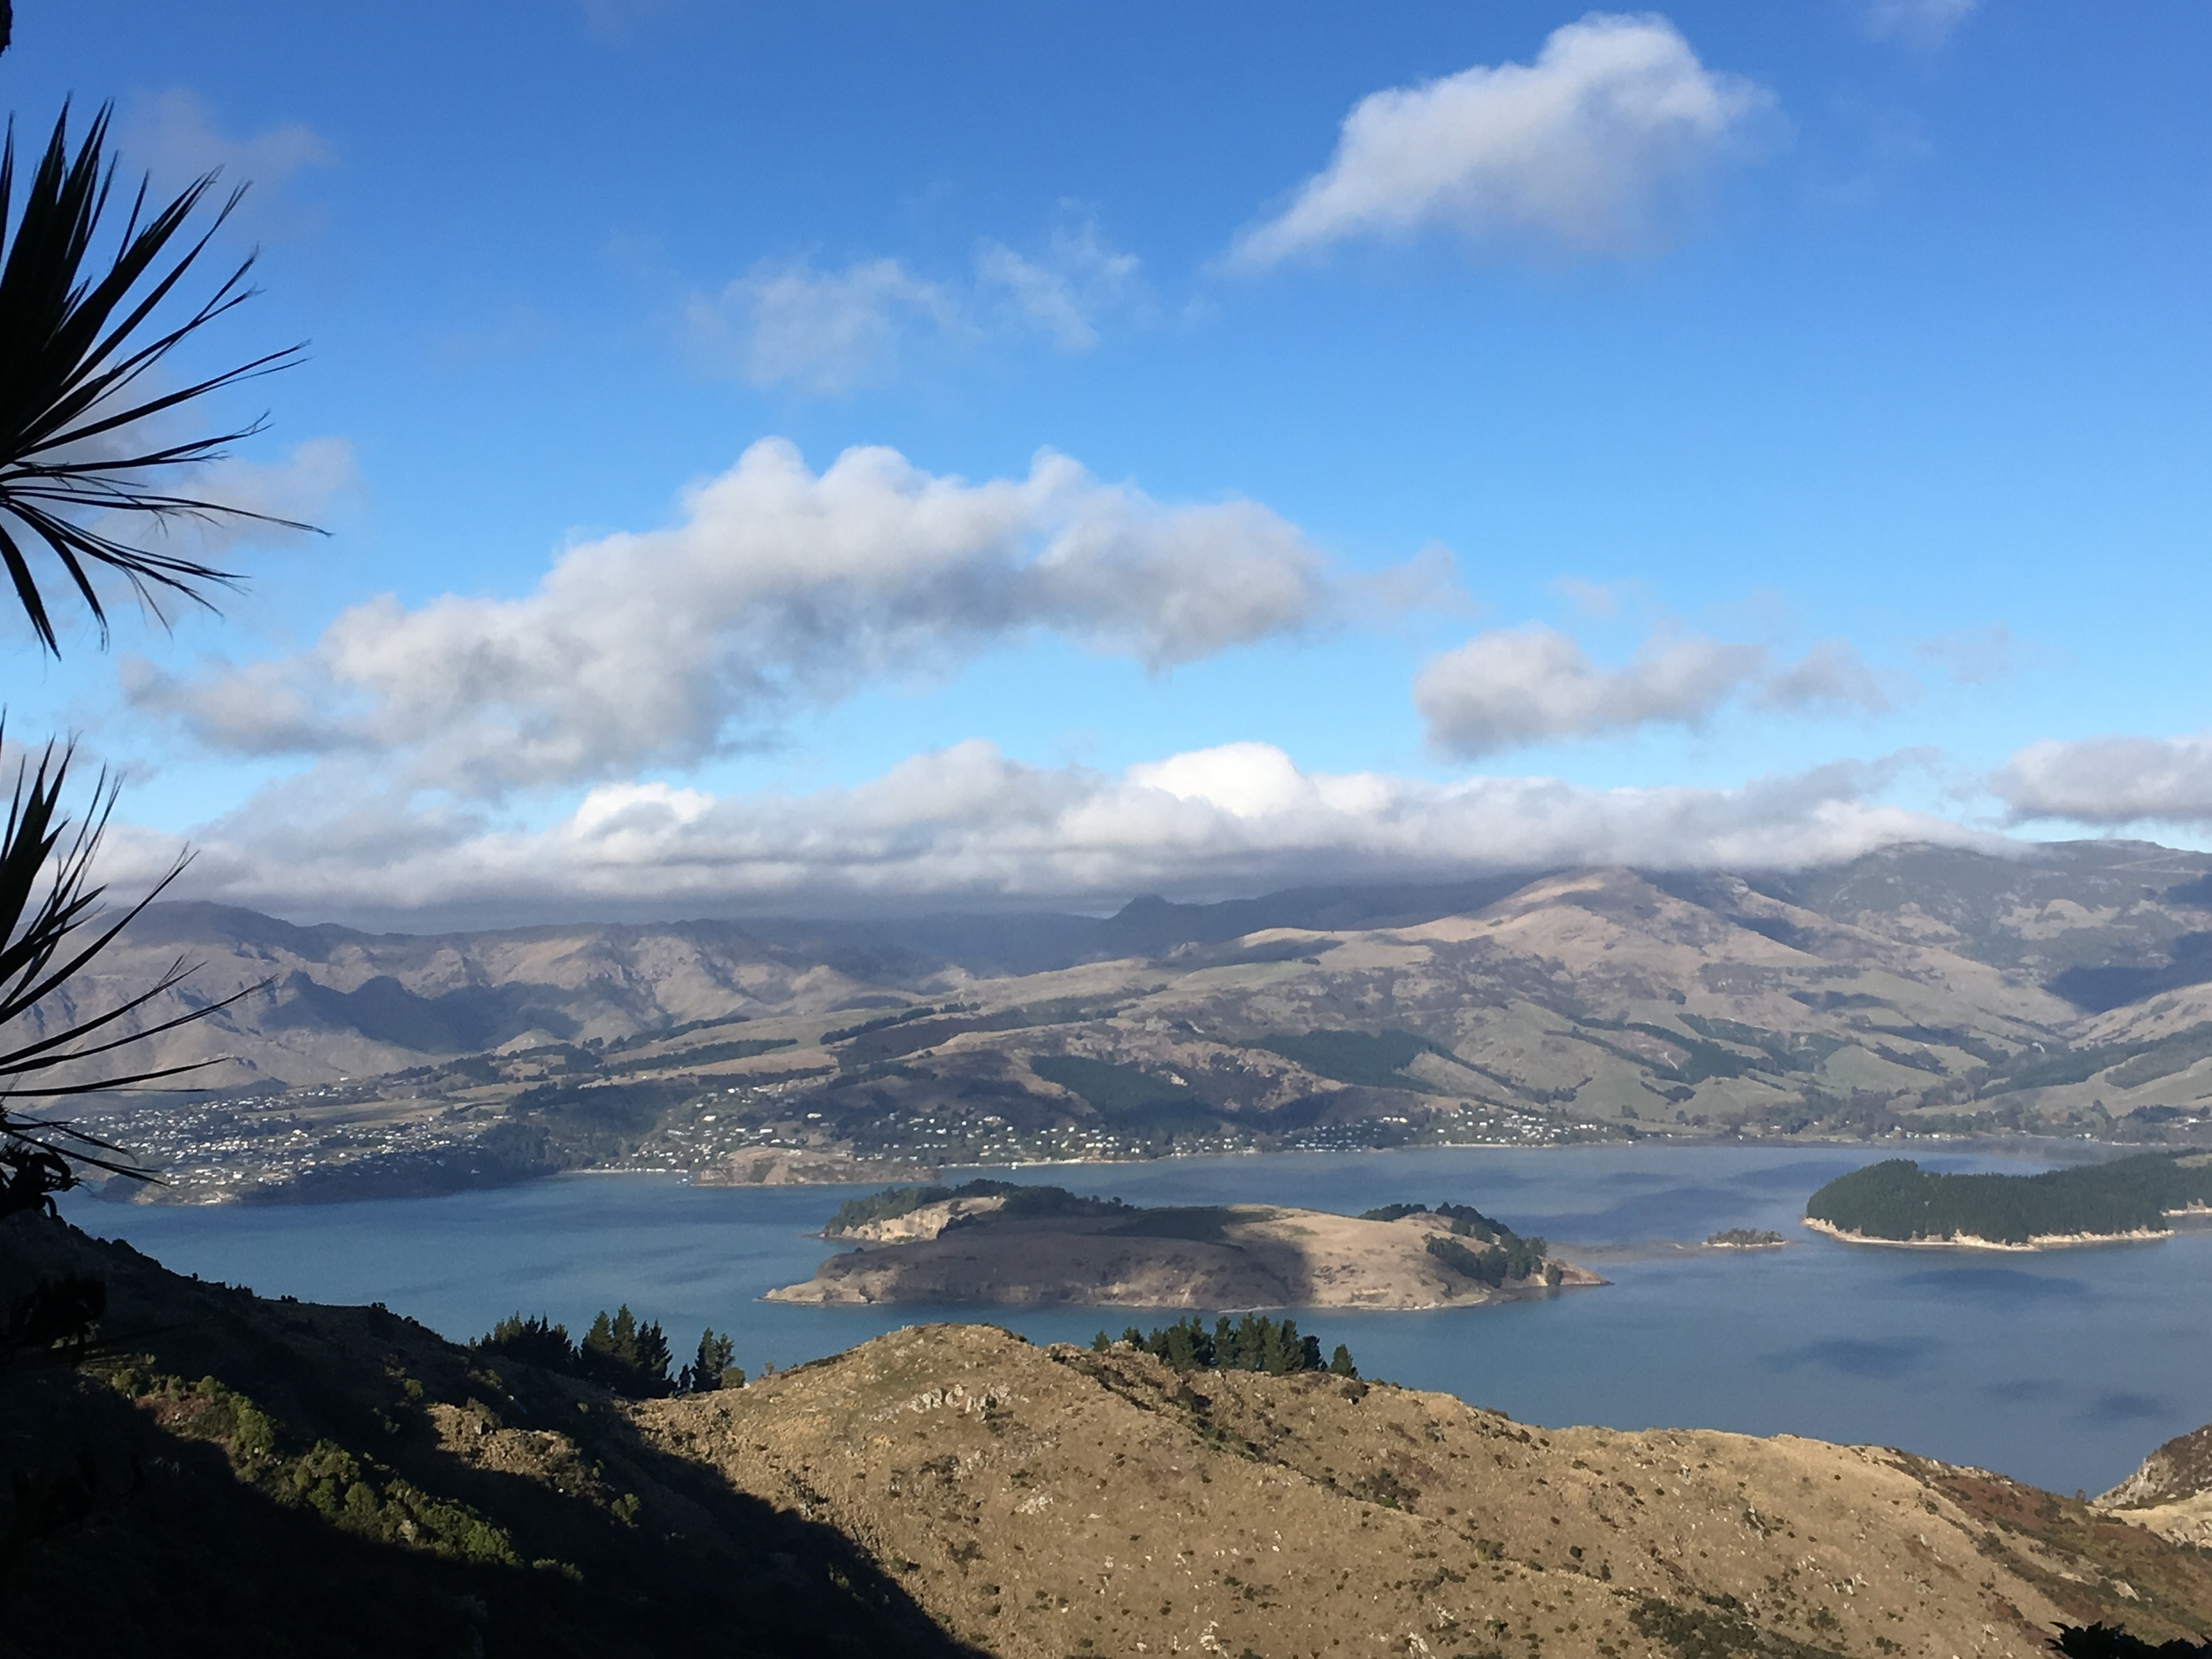 The Port Hills over looking Lyttelton Harbour towards Diamond Harbour in Christchurch photo by Sunstone